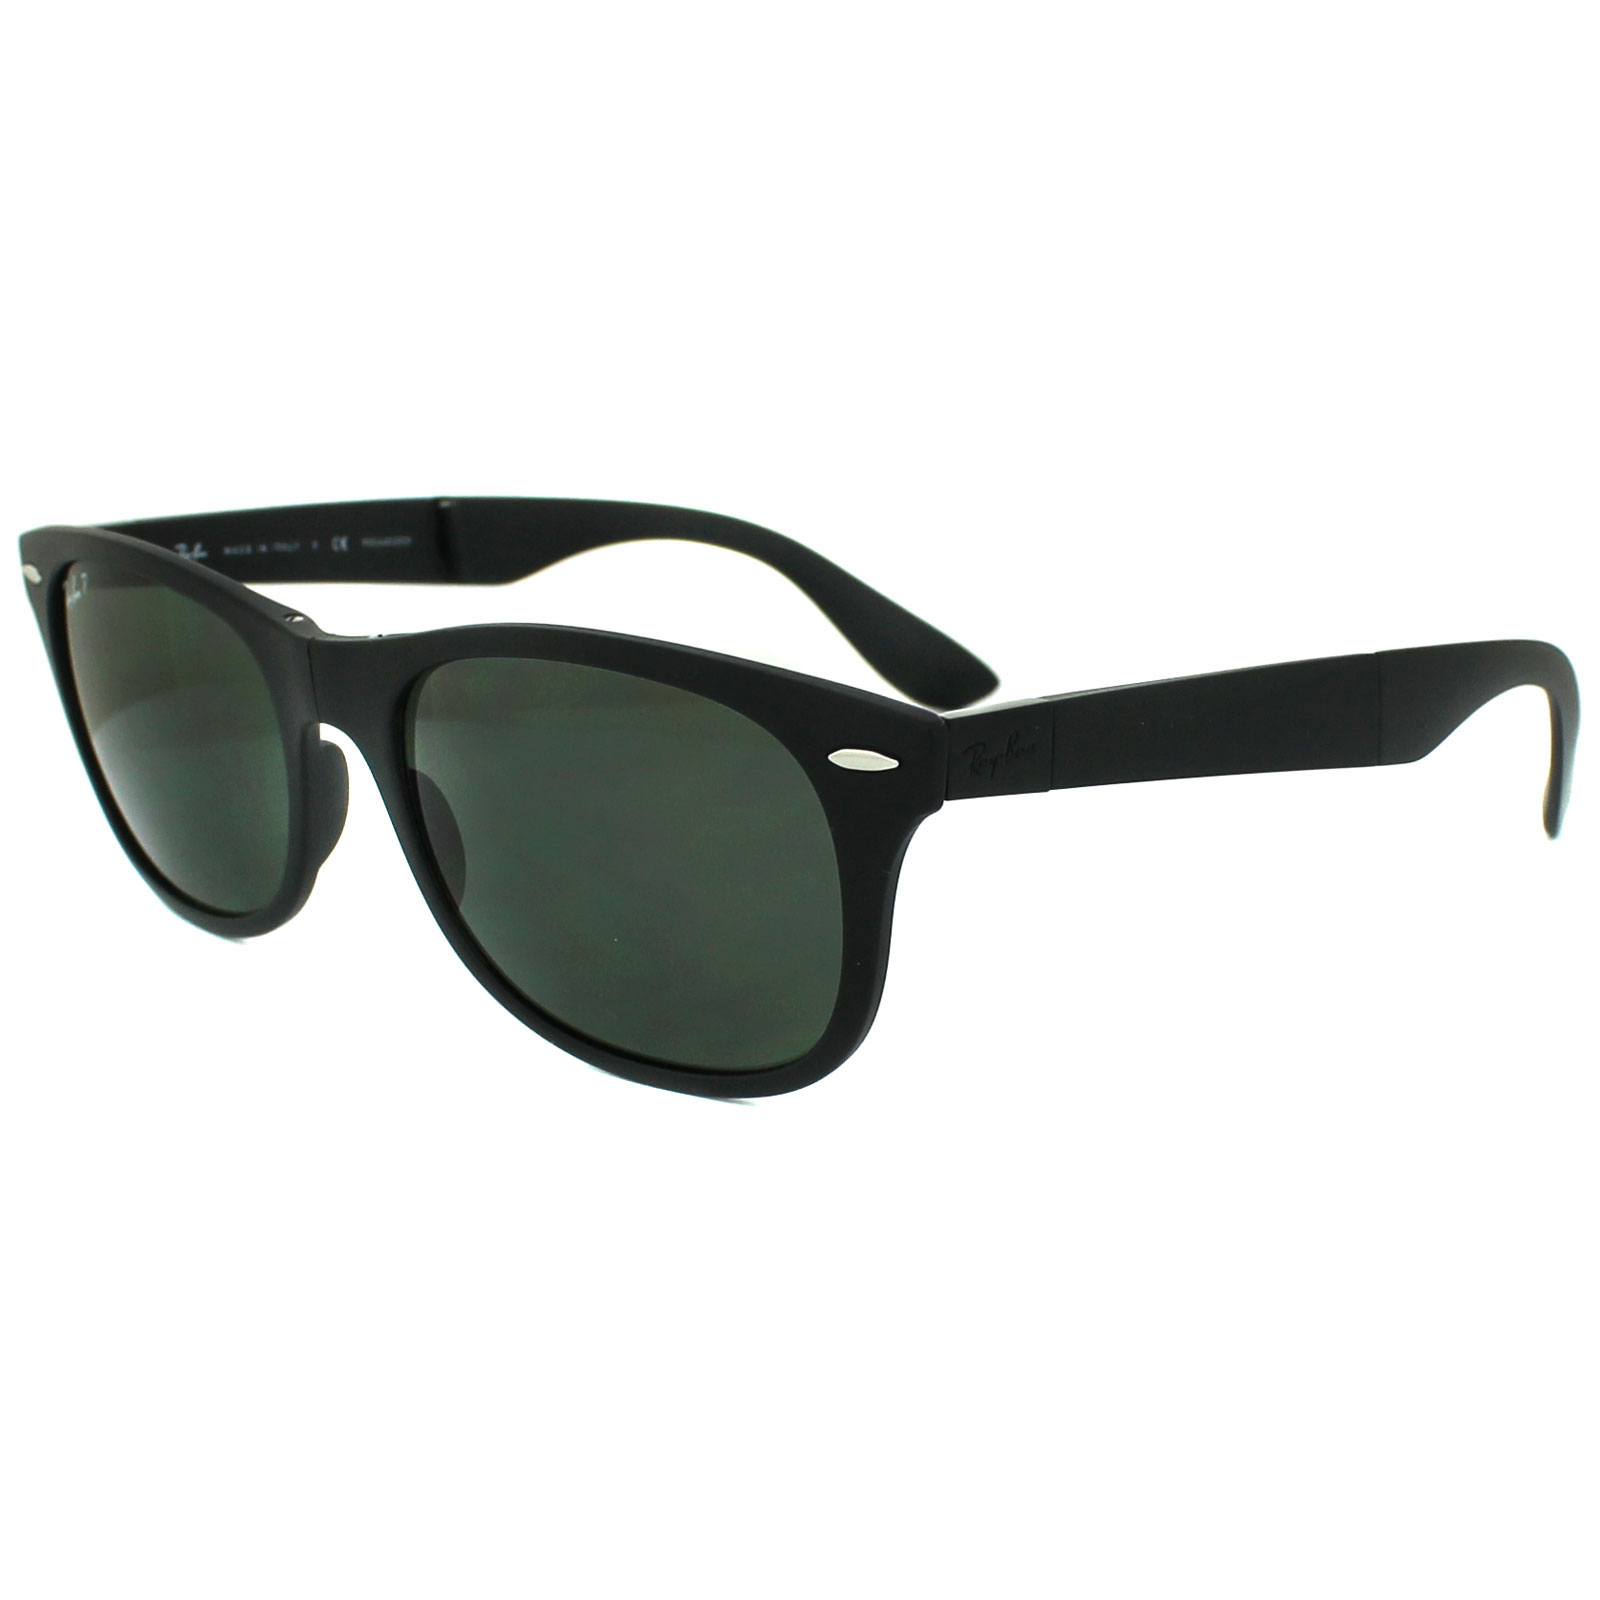 71a28bdfc1 Ray Ban Sunglass For Small Face « Heritage Malta